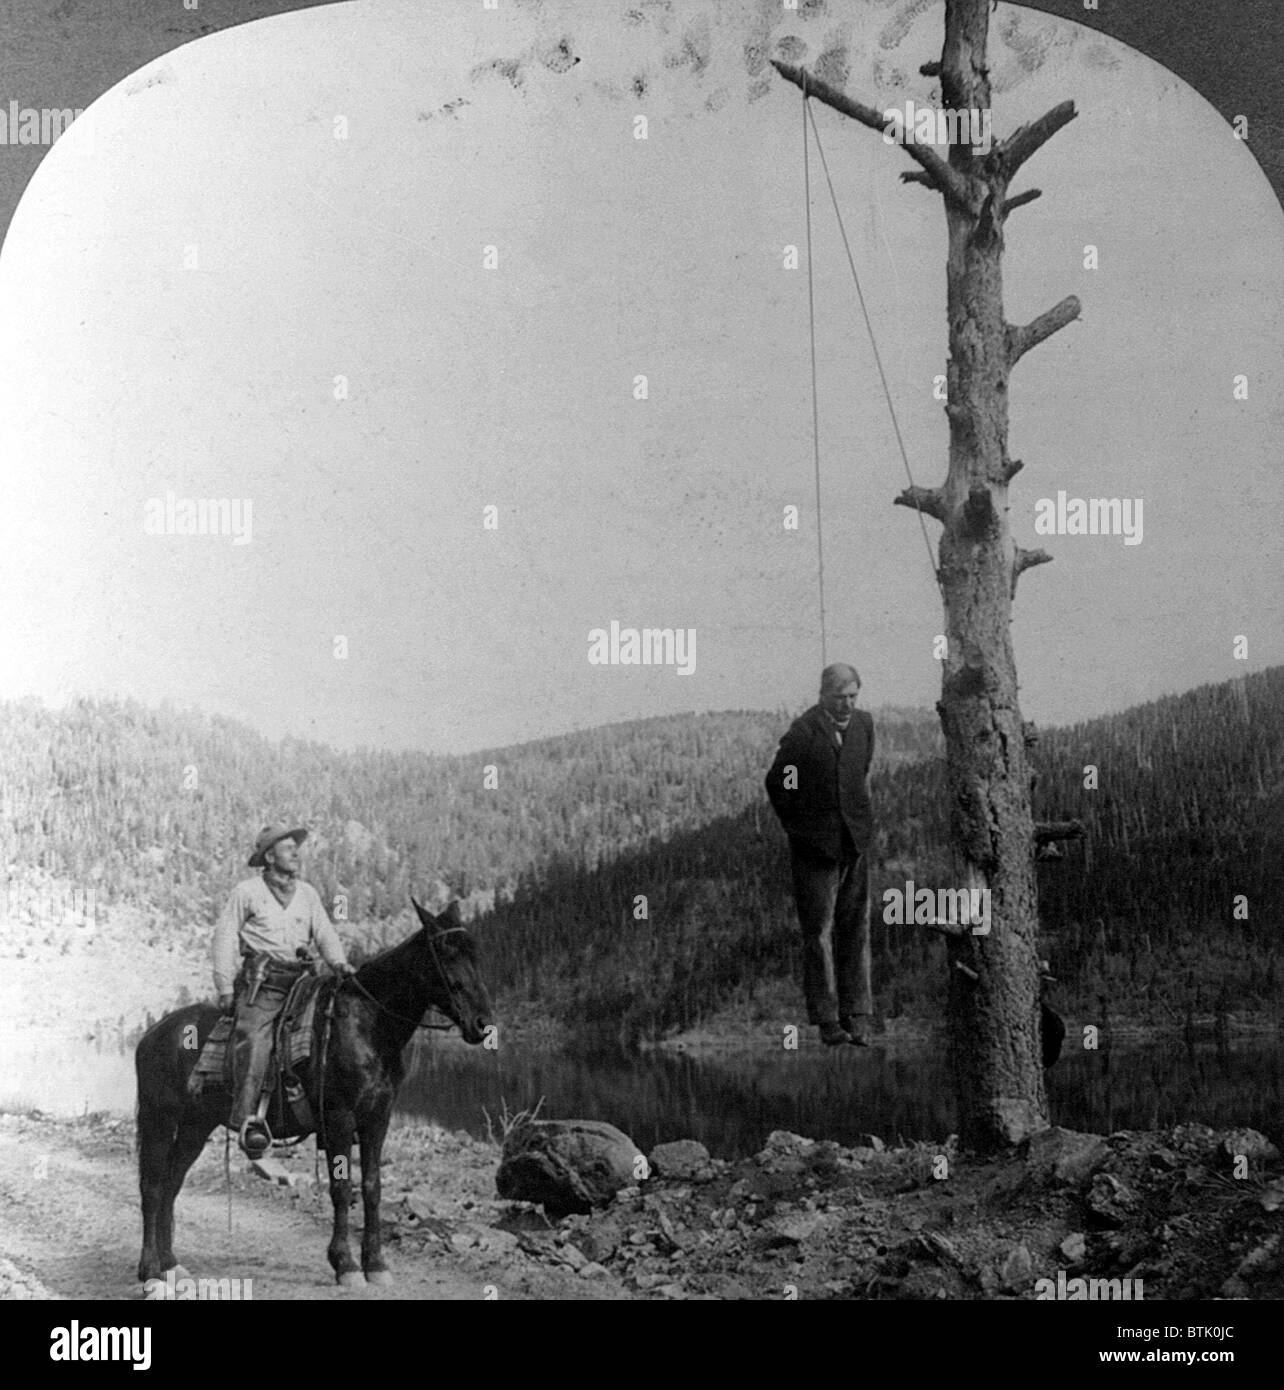 Wild West. Sheriff on horseback looking at stage coach robber hanging by neck from tree, 1911. - Stock Image